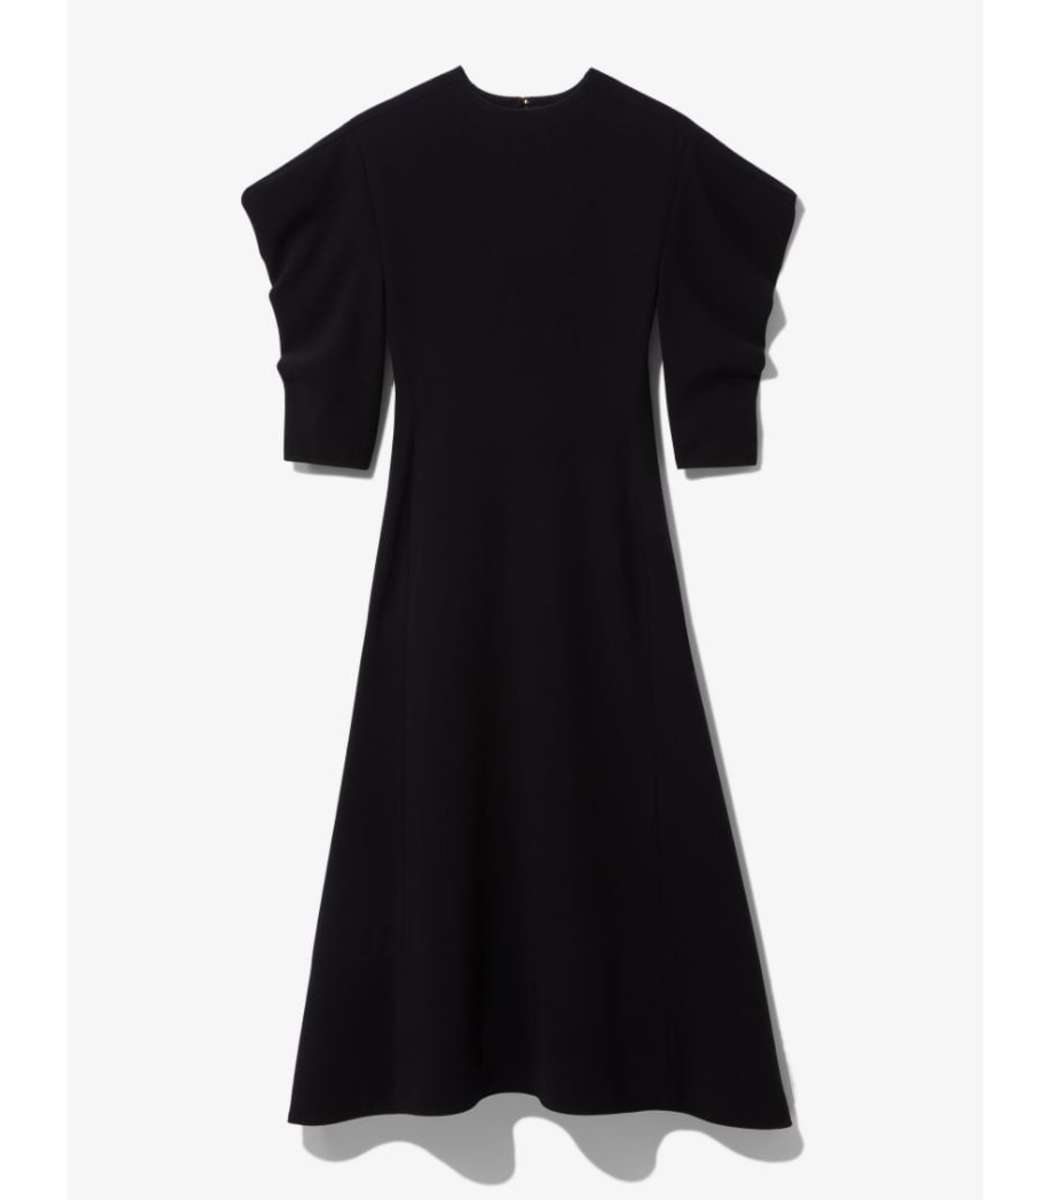 Proenza Schouler Draped Sleeve Dress